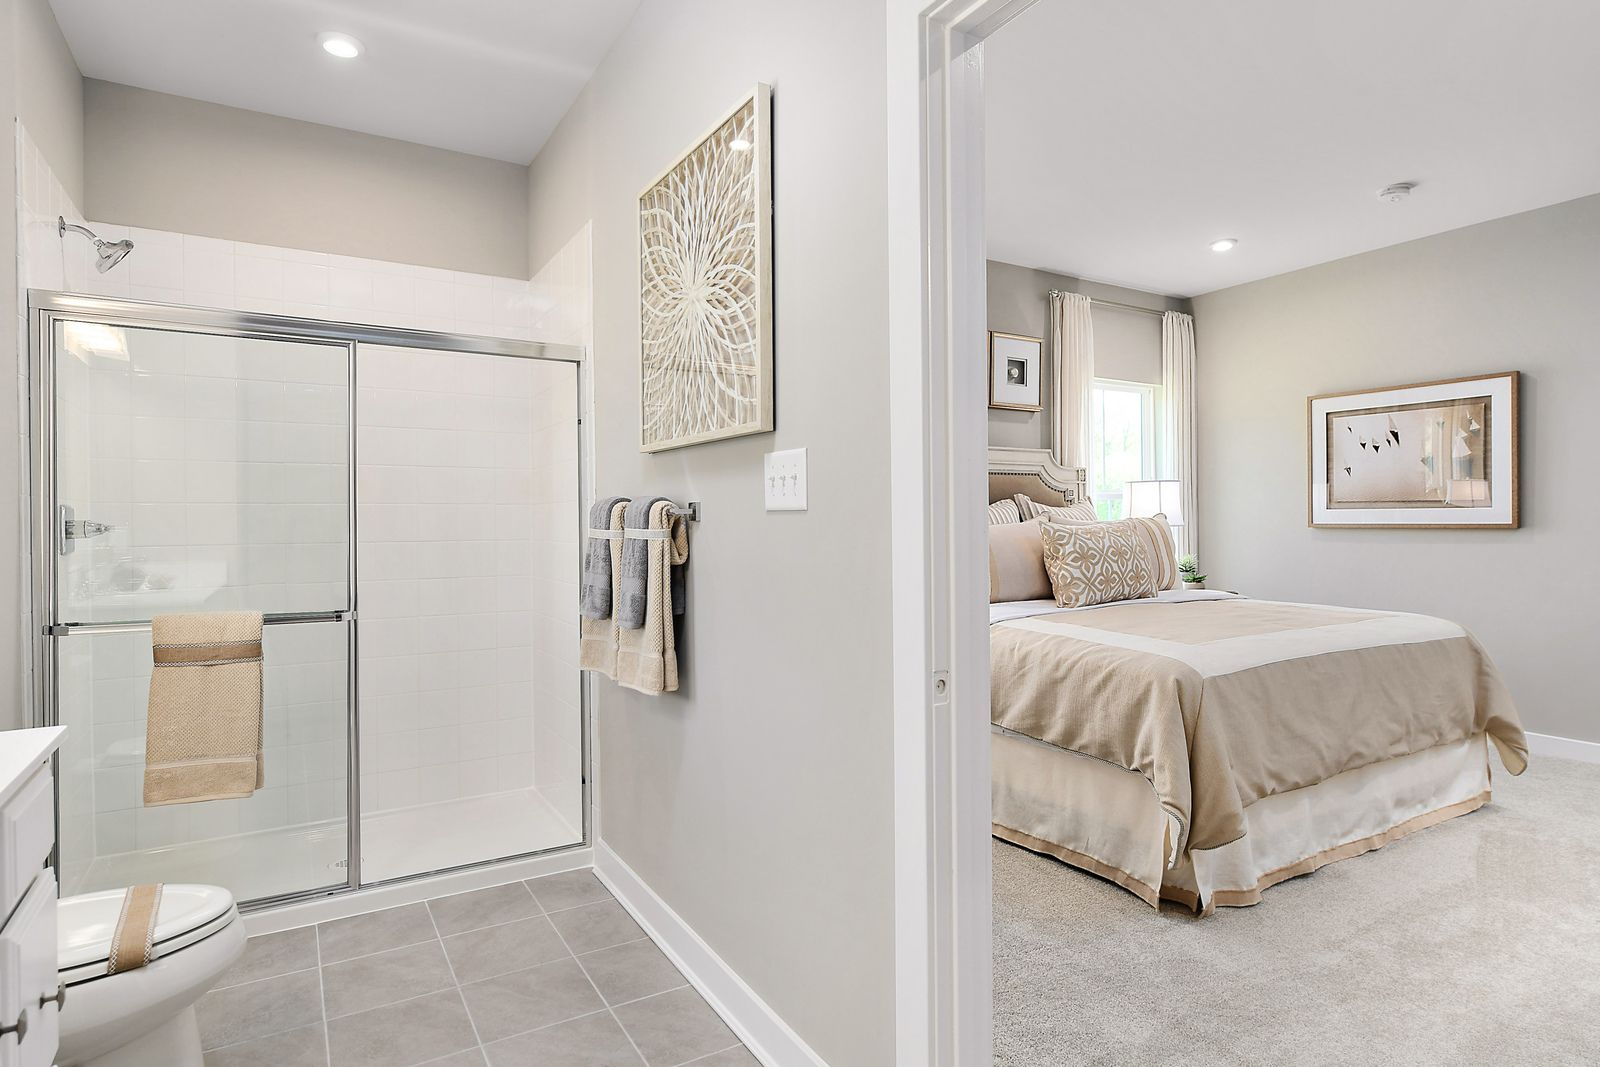 Bedroom featured in the Ashbrooke By Ryan Homes in Sussex, DE